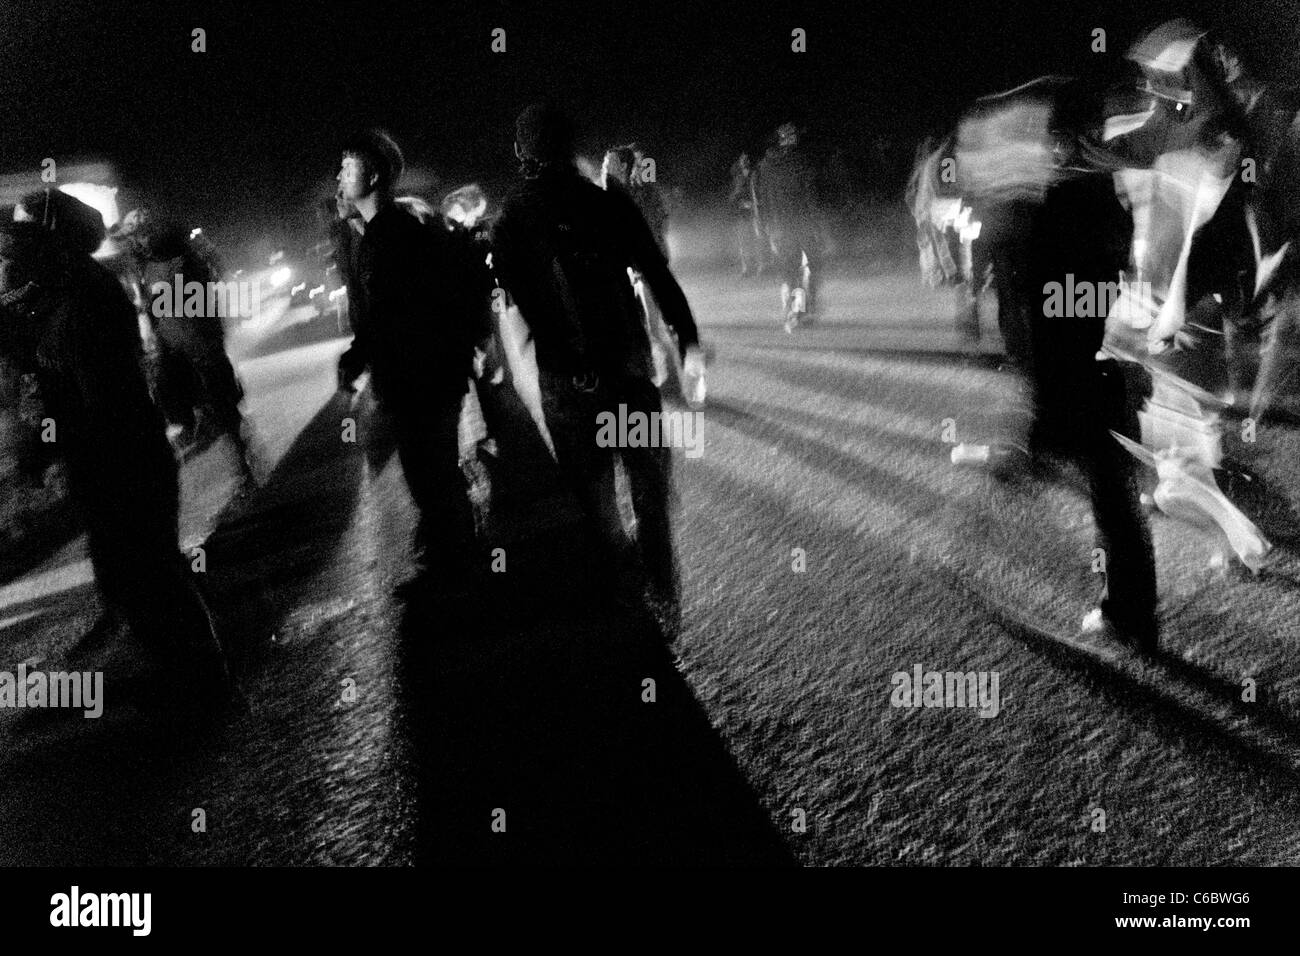 """Young people dance during the night at Czech Free Tekno Festival """"Czarotek"""" close to Květná, Czech Republic. Stock Photo"""